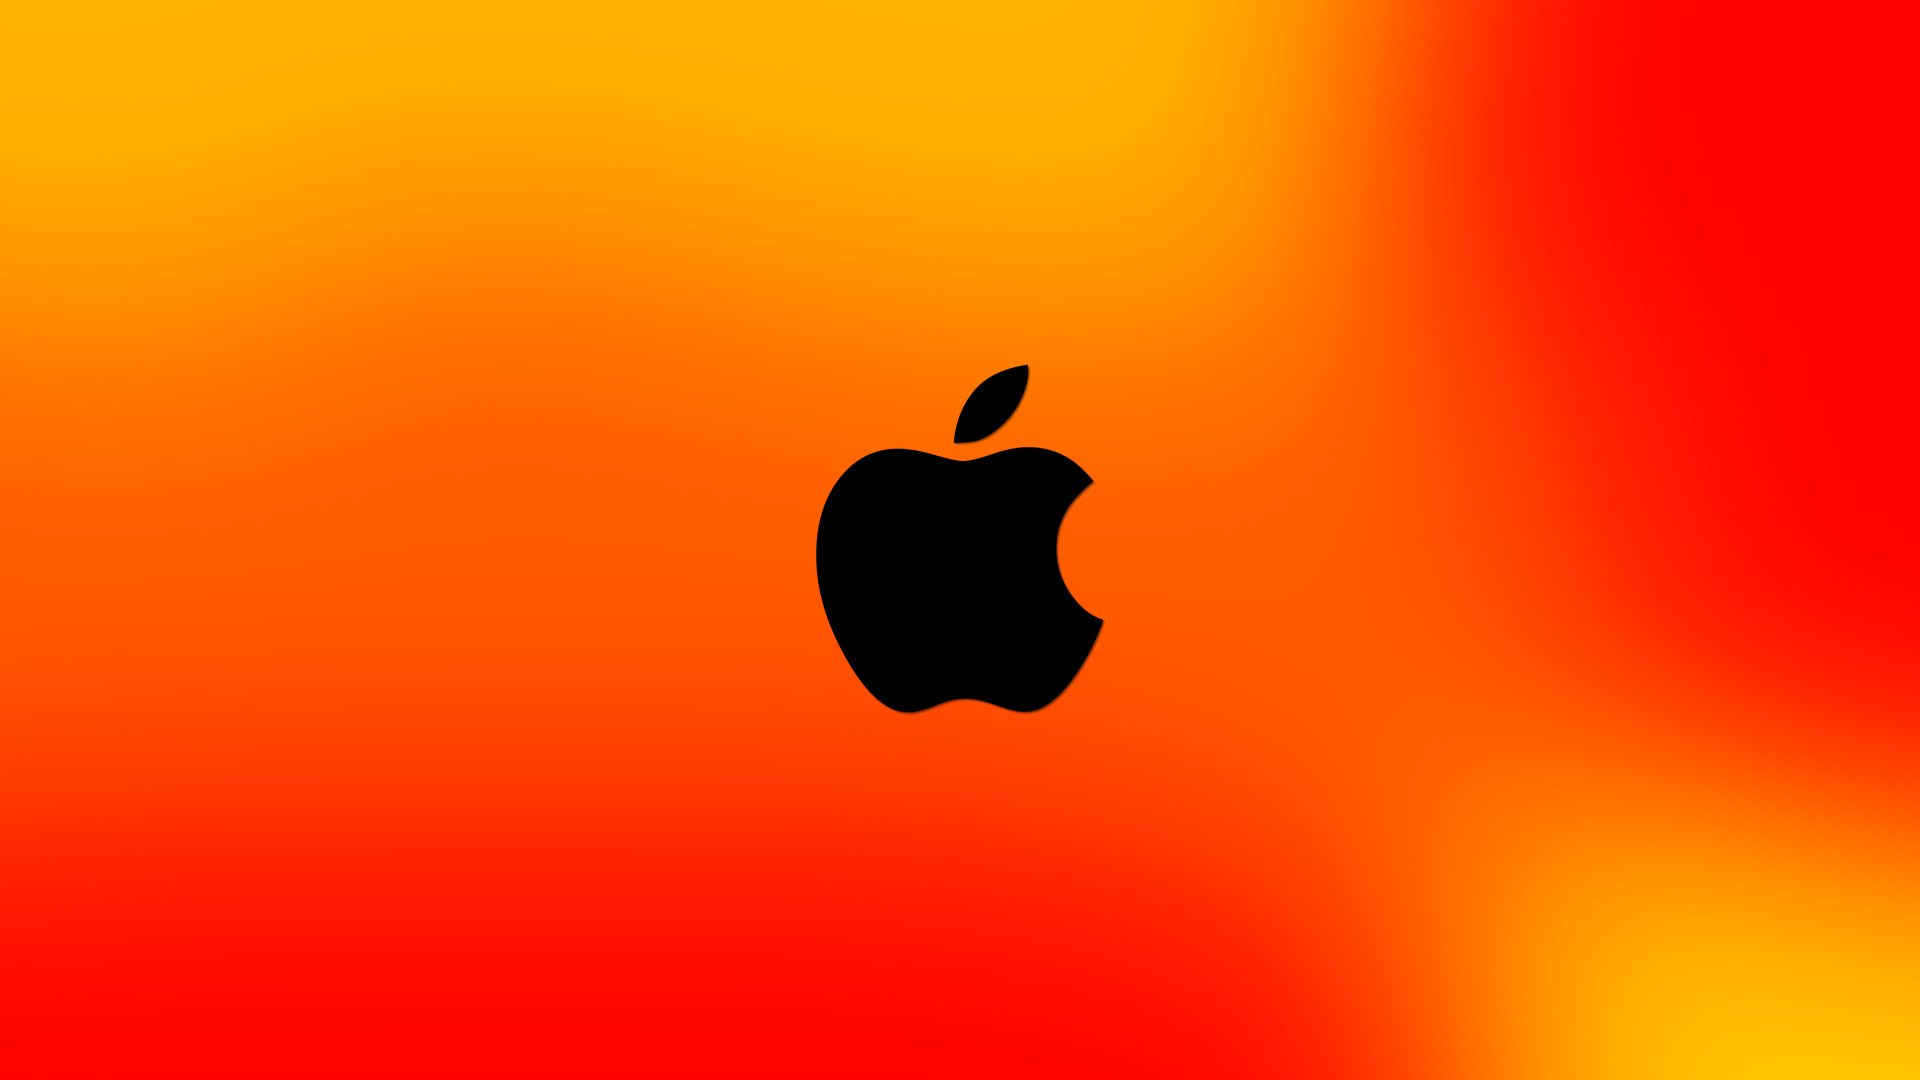 Apple Iphone Wallpapers Hd 1920x1080